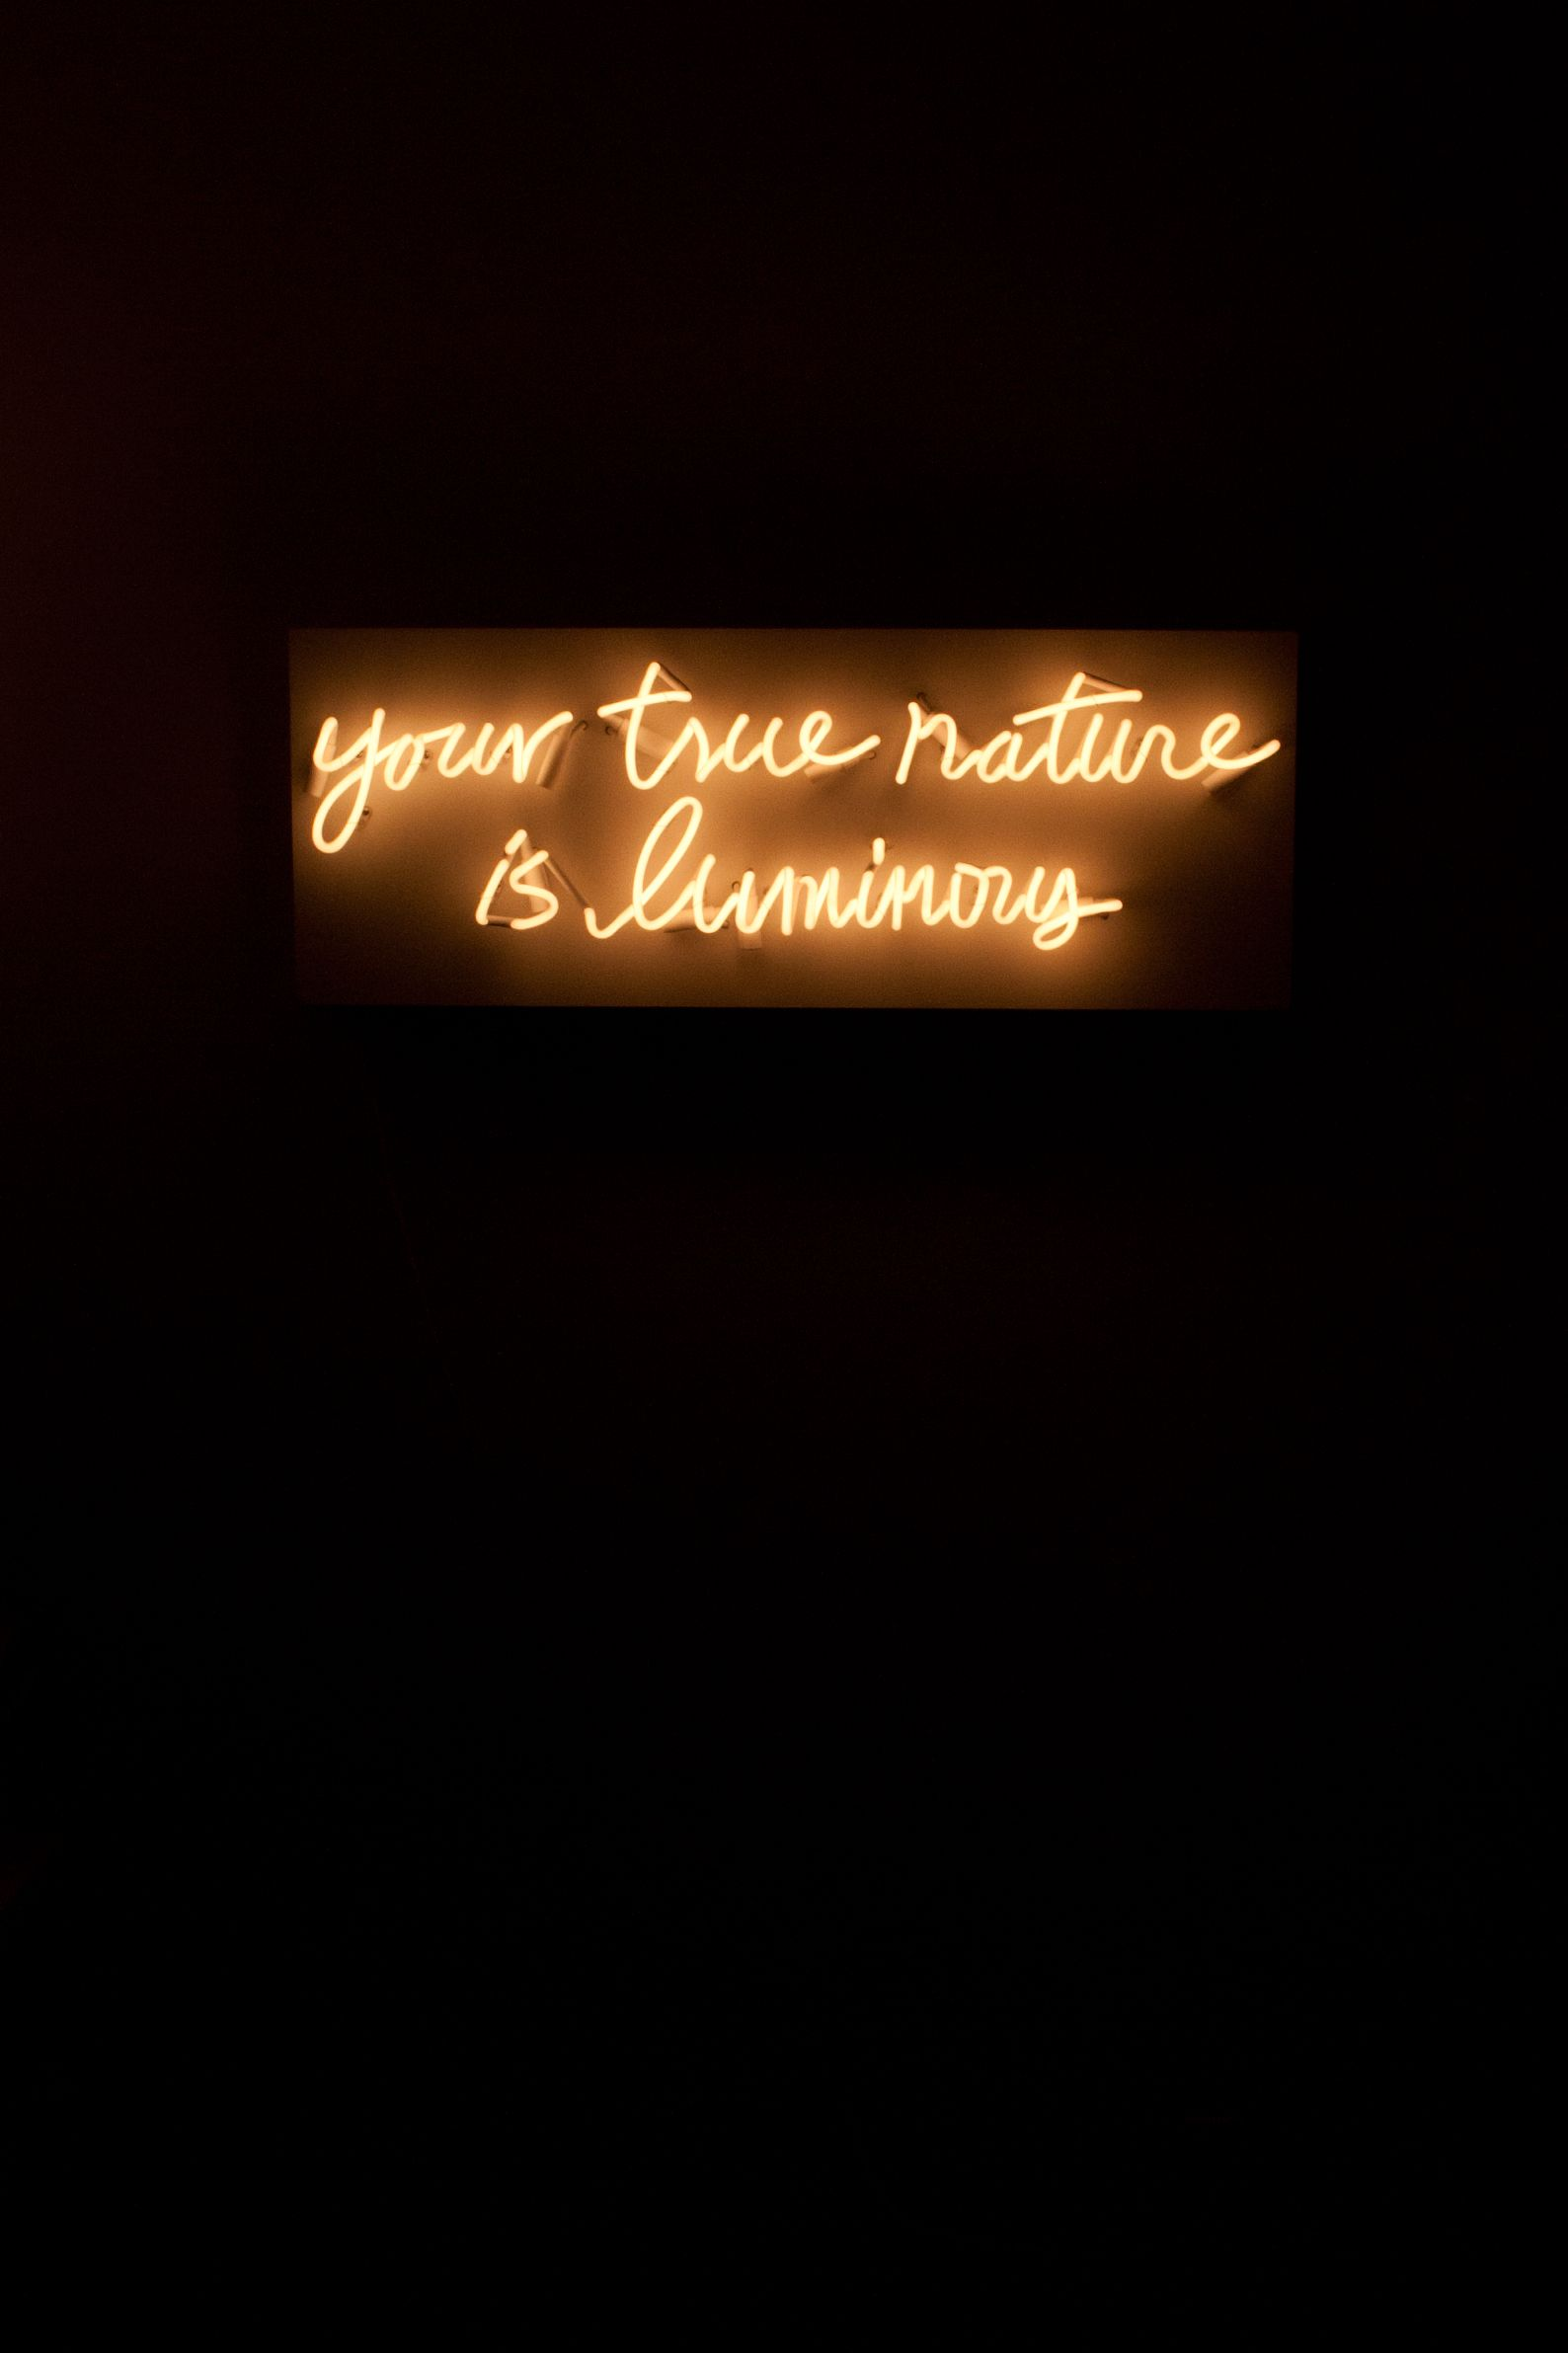 Light Quotes Impressive Neon #truthbomb  Pinterest  True Nature Neon And Neon Lighting